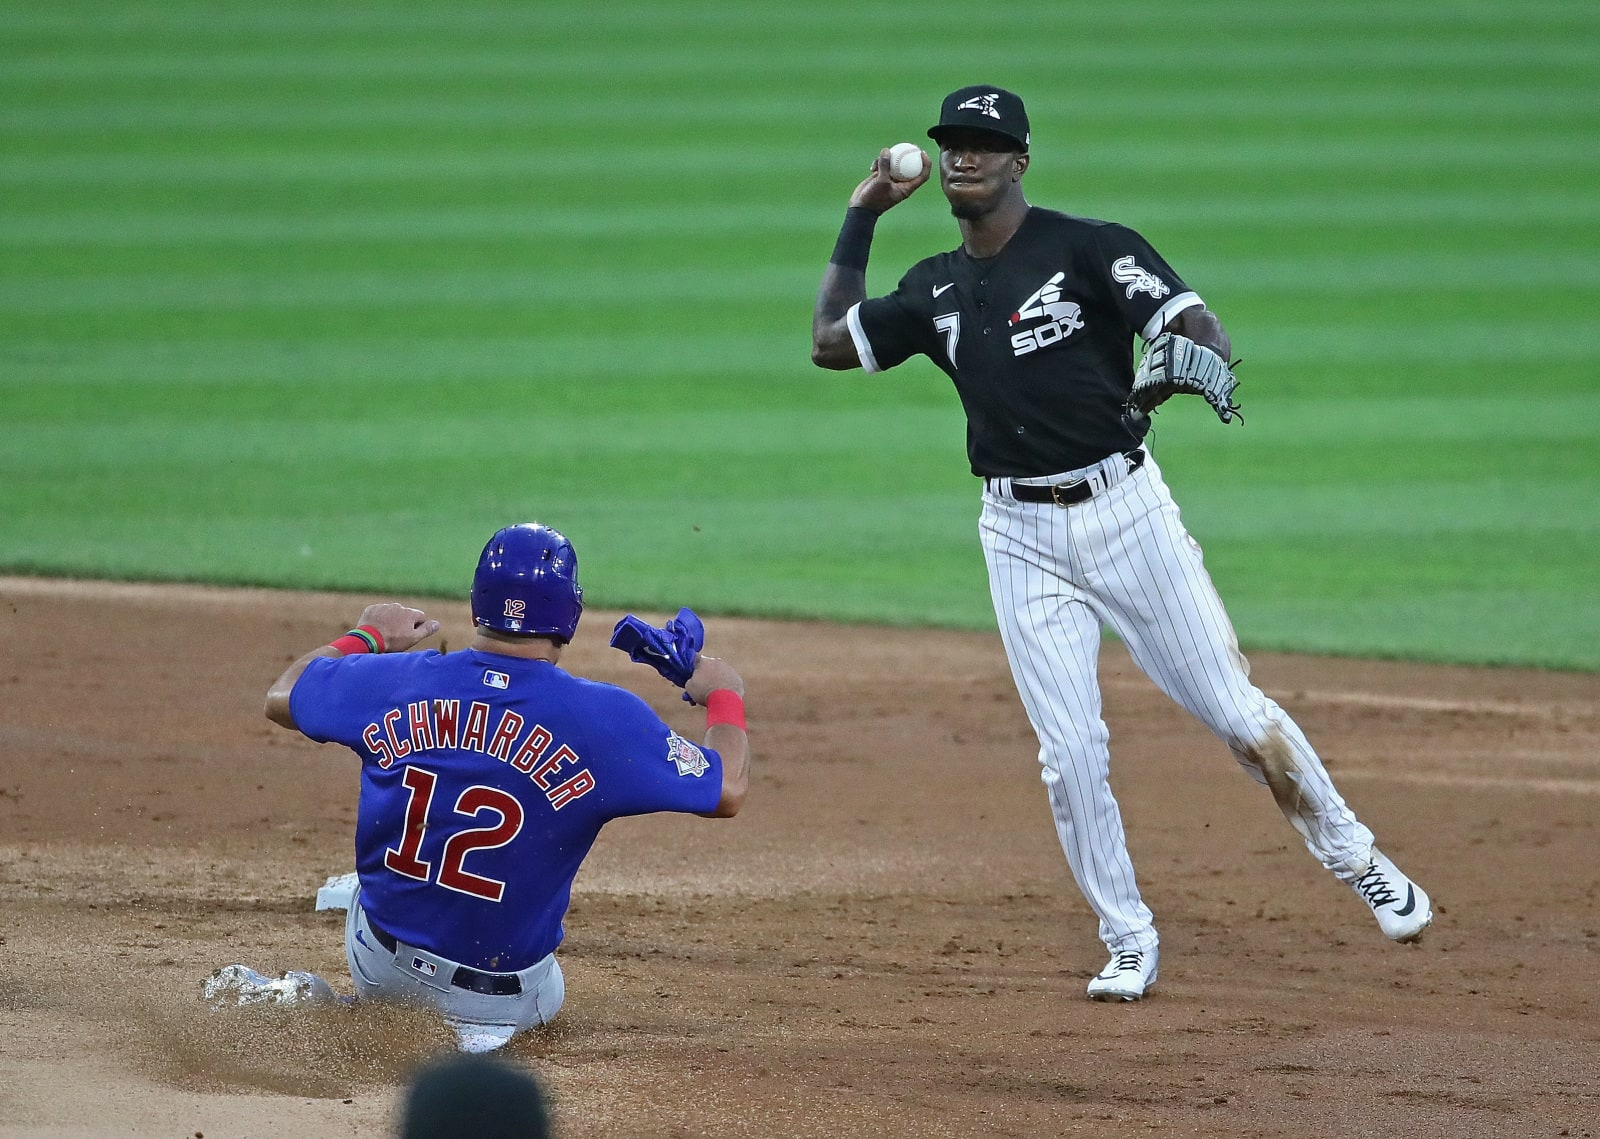 Chicago Cubs, Chicago White Sox